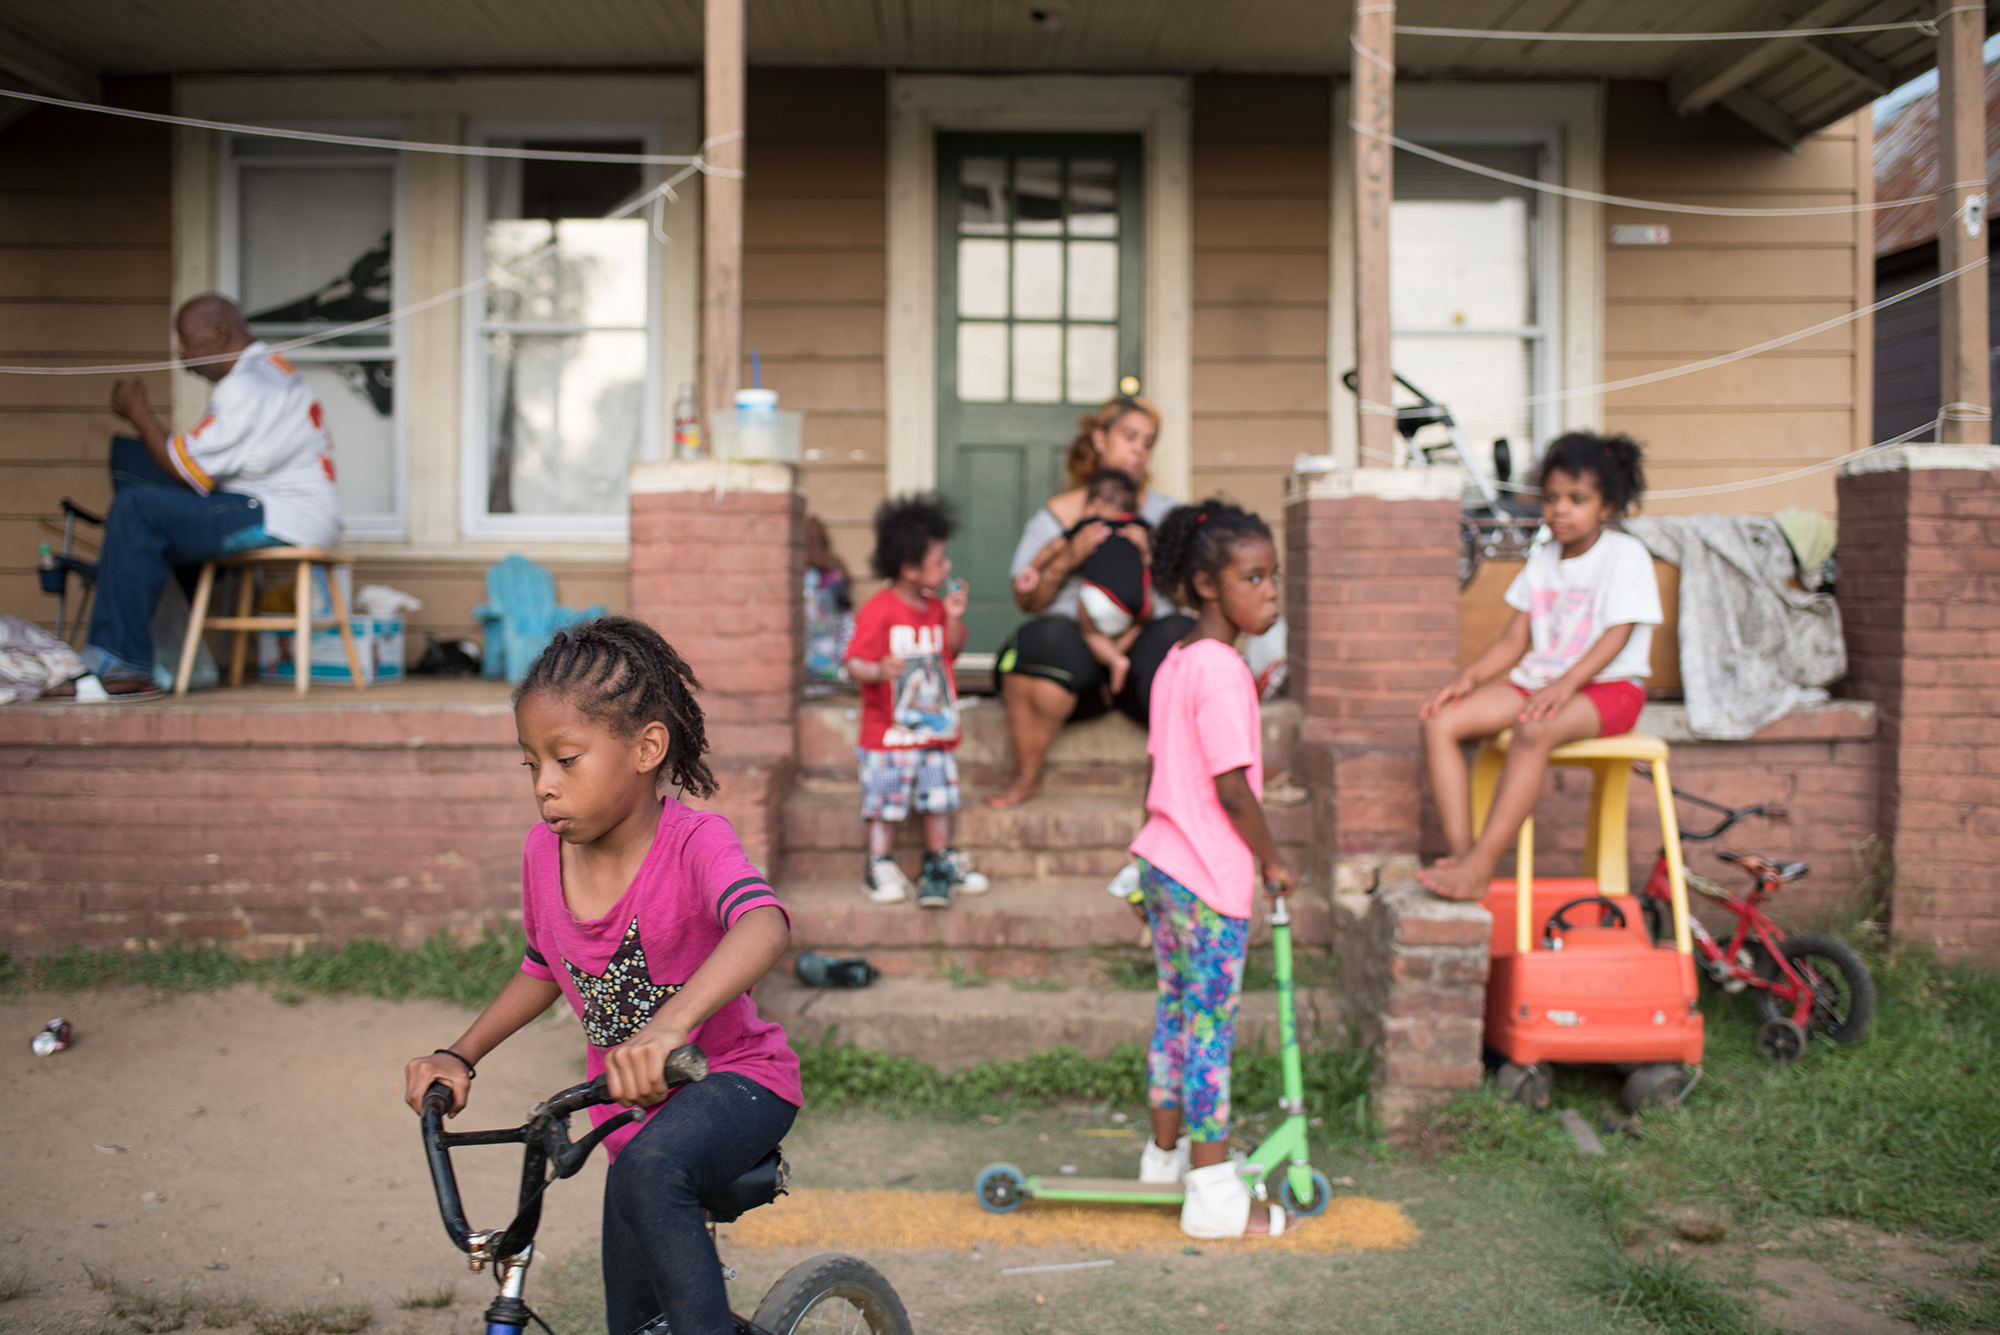 Mother Charise Henderson, sits on the steps with her kids in Raleigh, North Carolina. Henderson has a son, Za'Mont, 5, who has Sickle Cell Disease and has had three liver transplants over the course of three years.